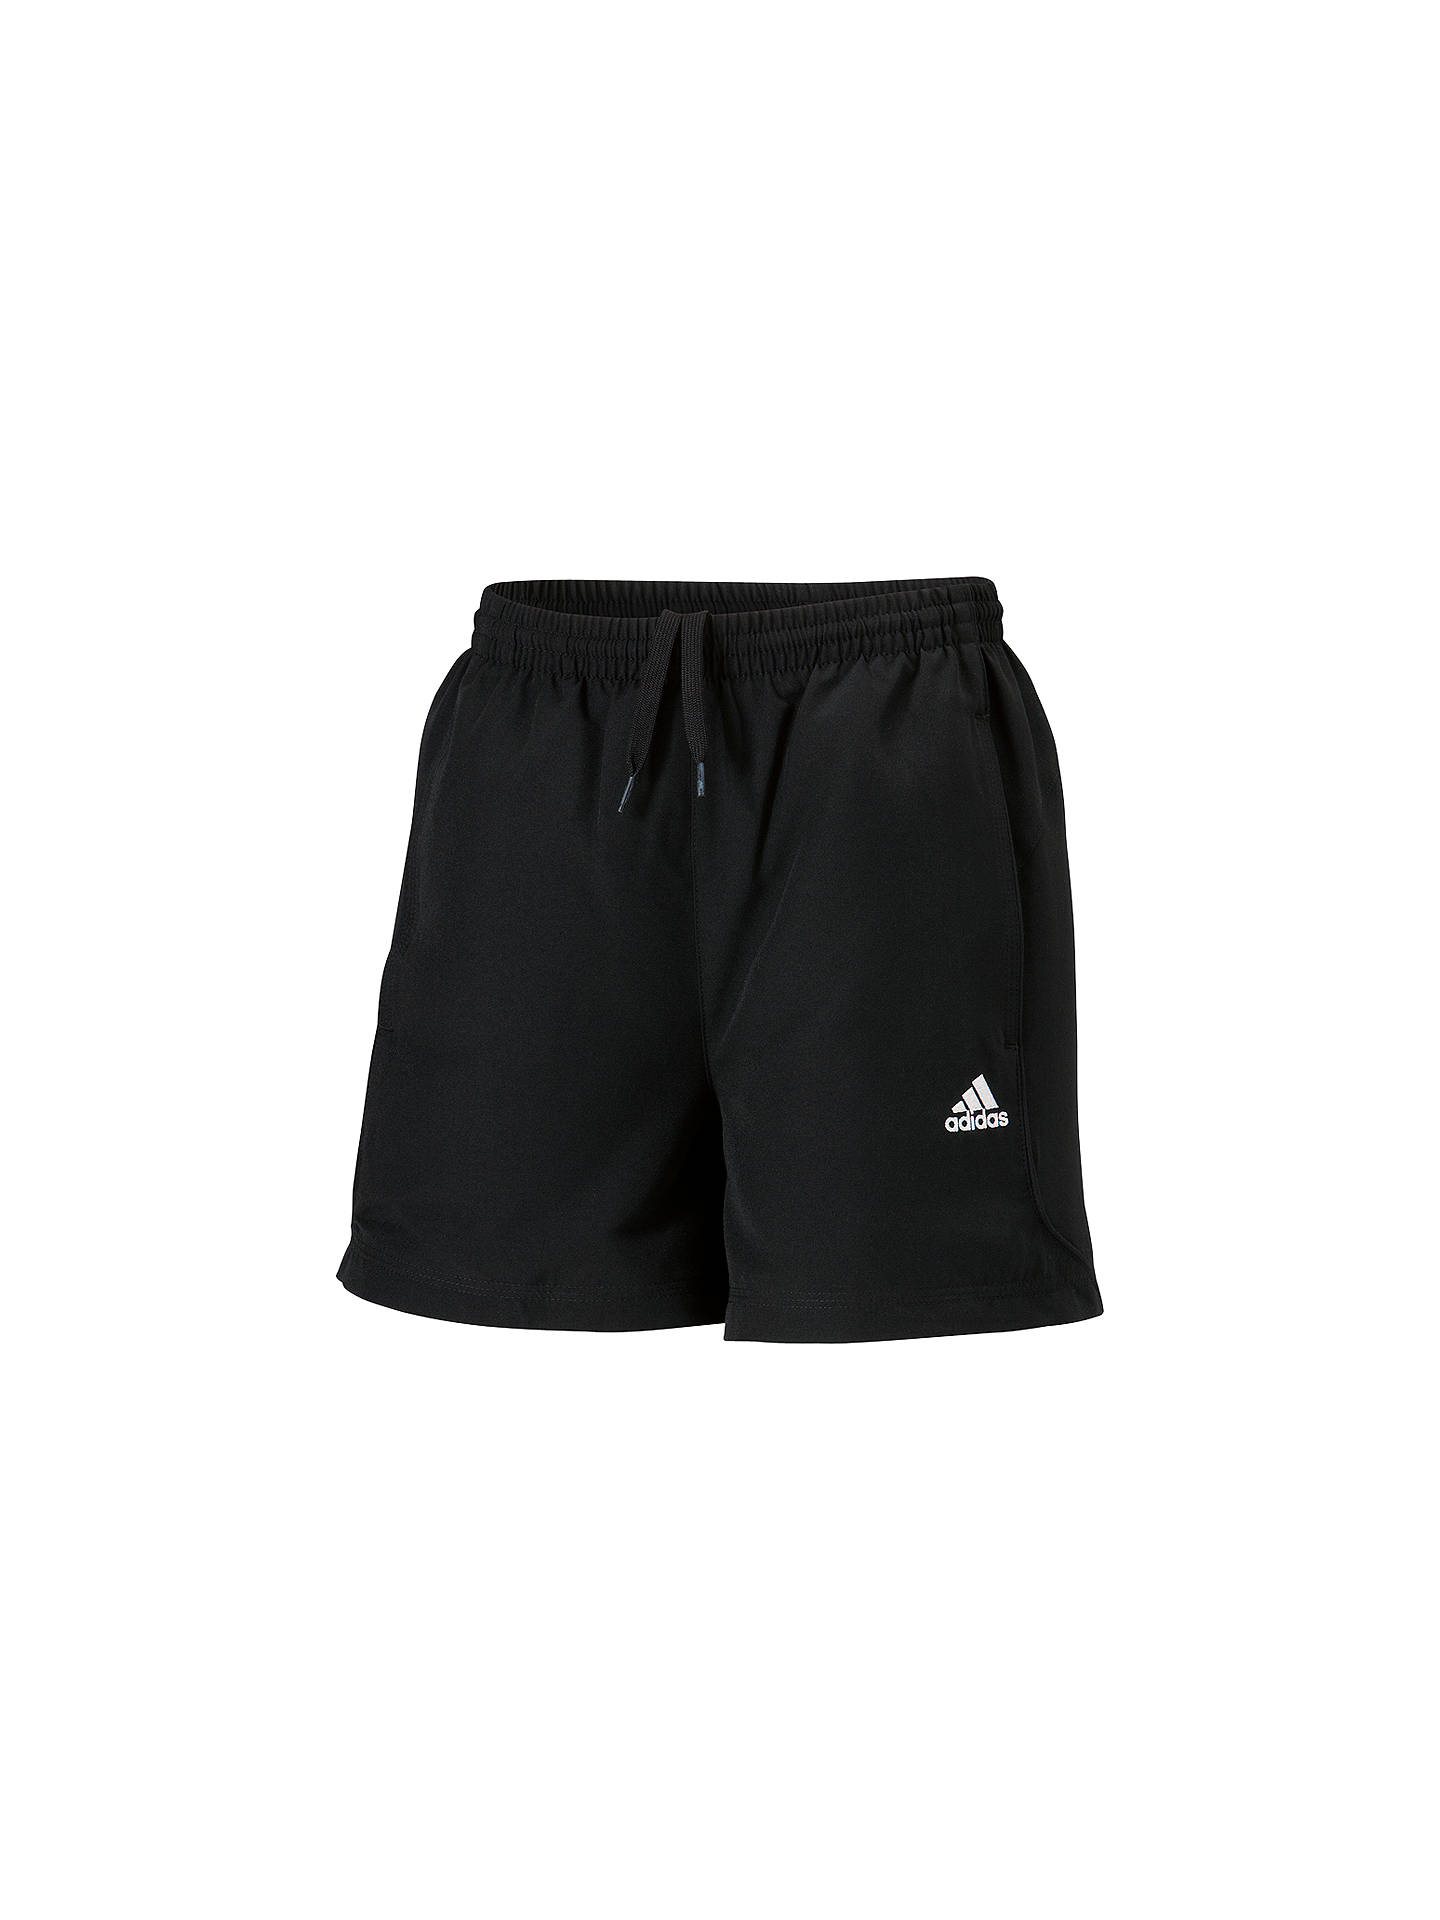 adidas Essential Chelsea Shorts at John Lewis & Partners